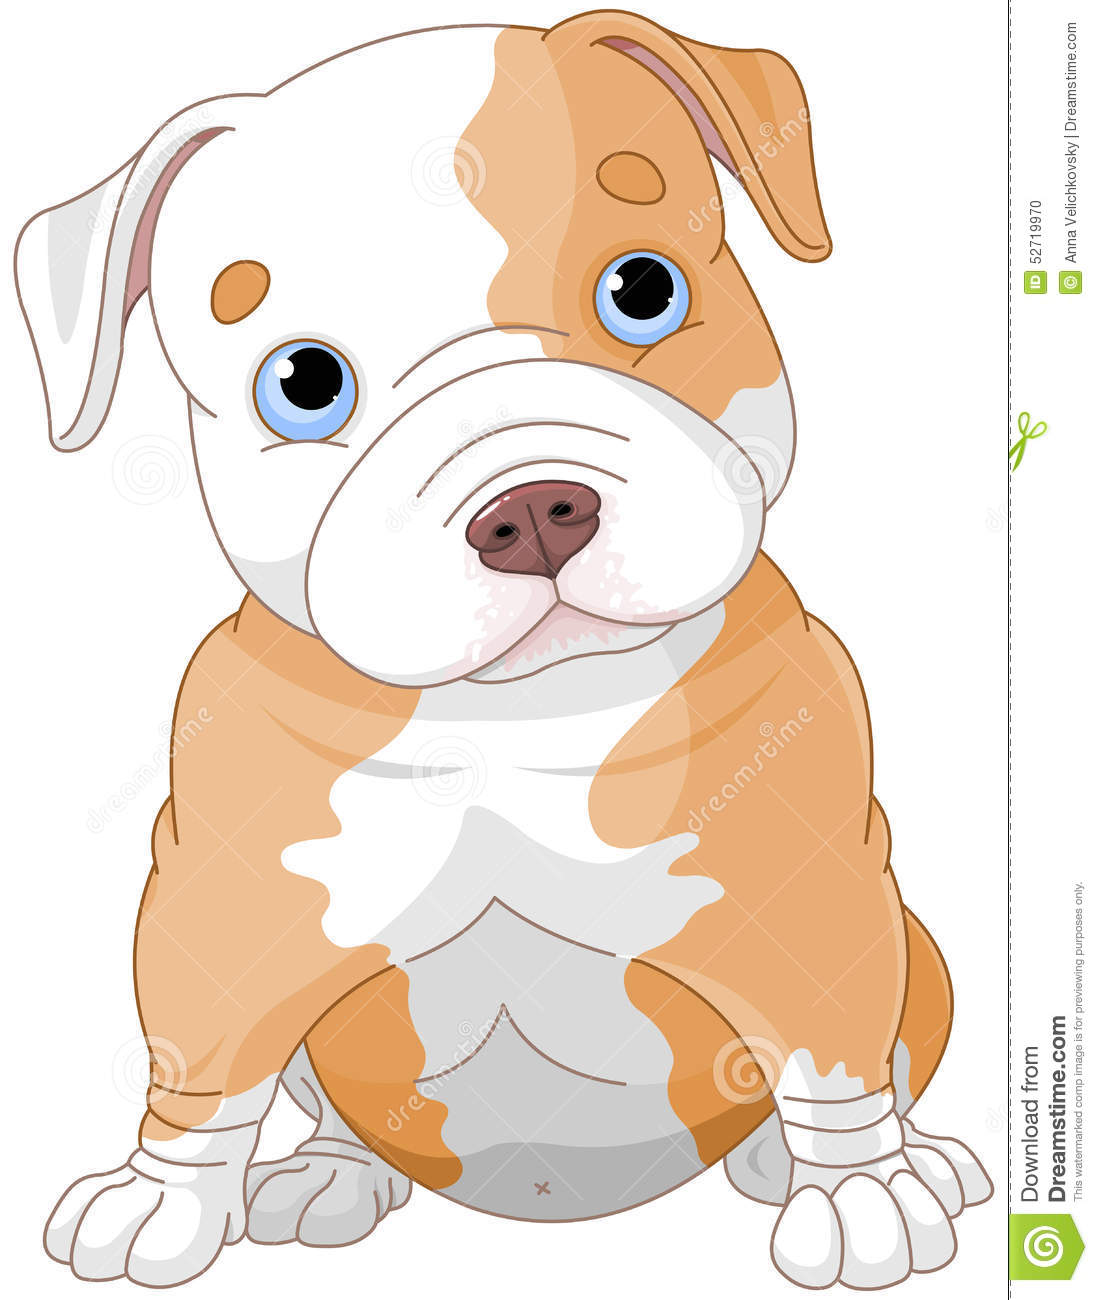 Pitbull Puppy Images images